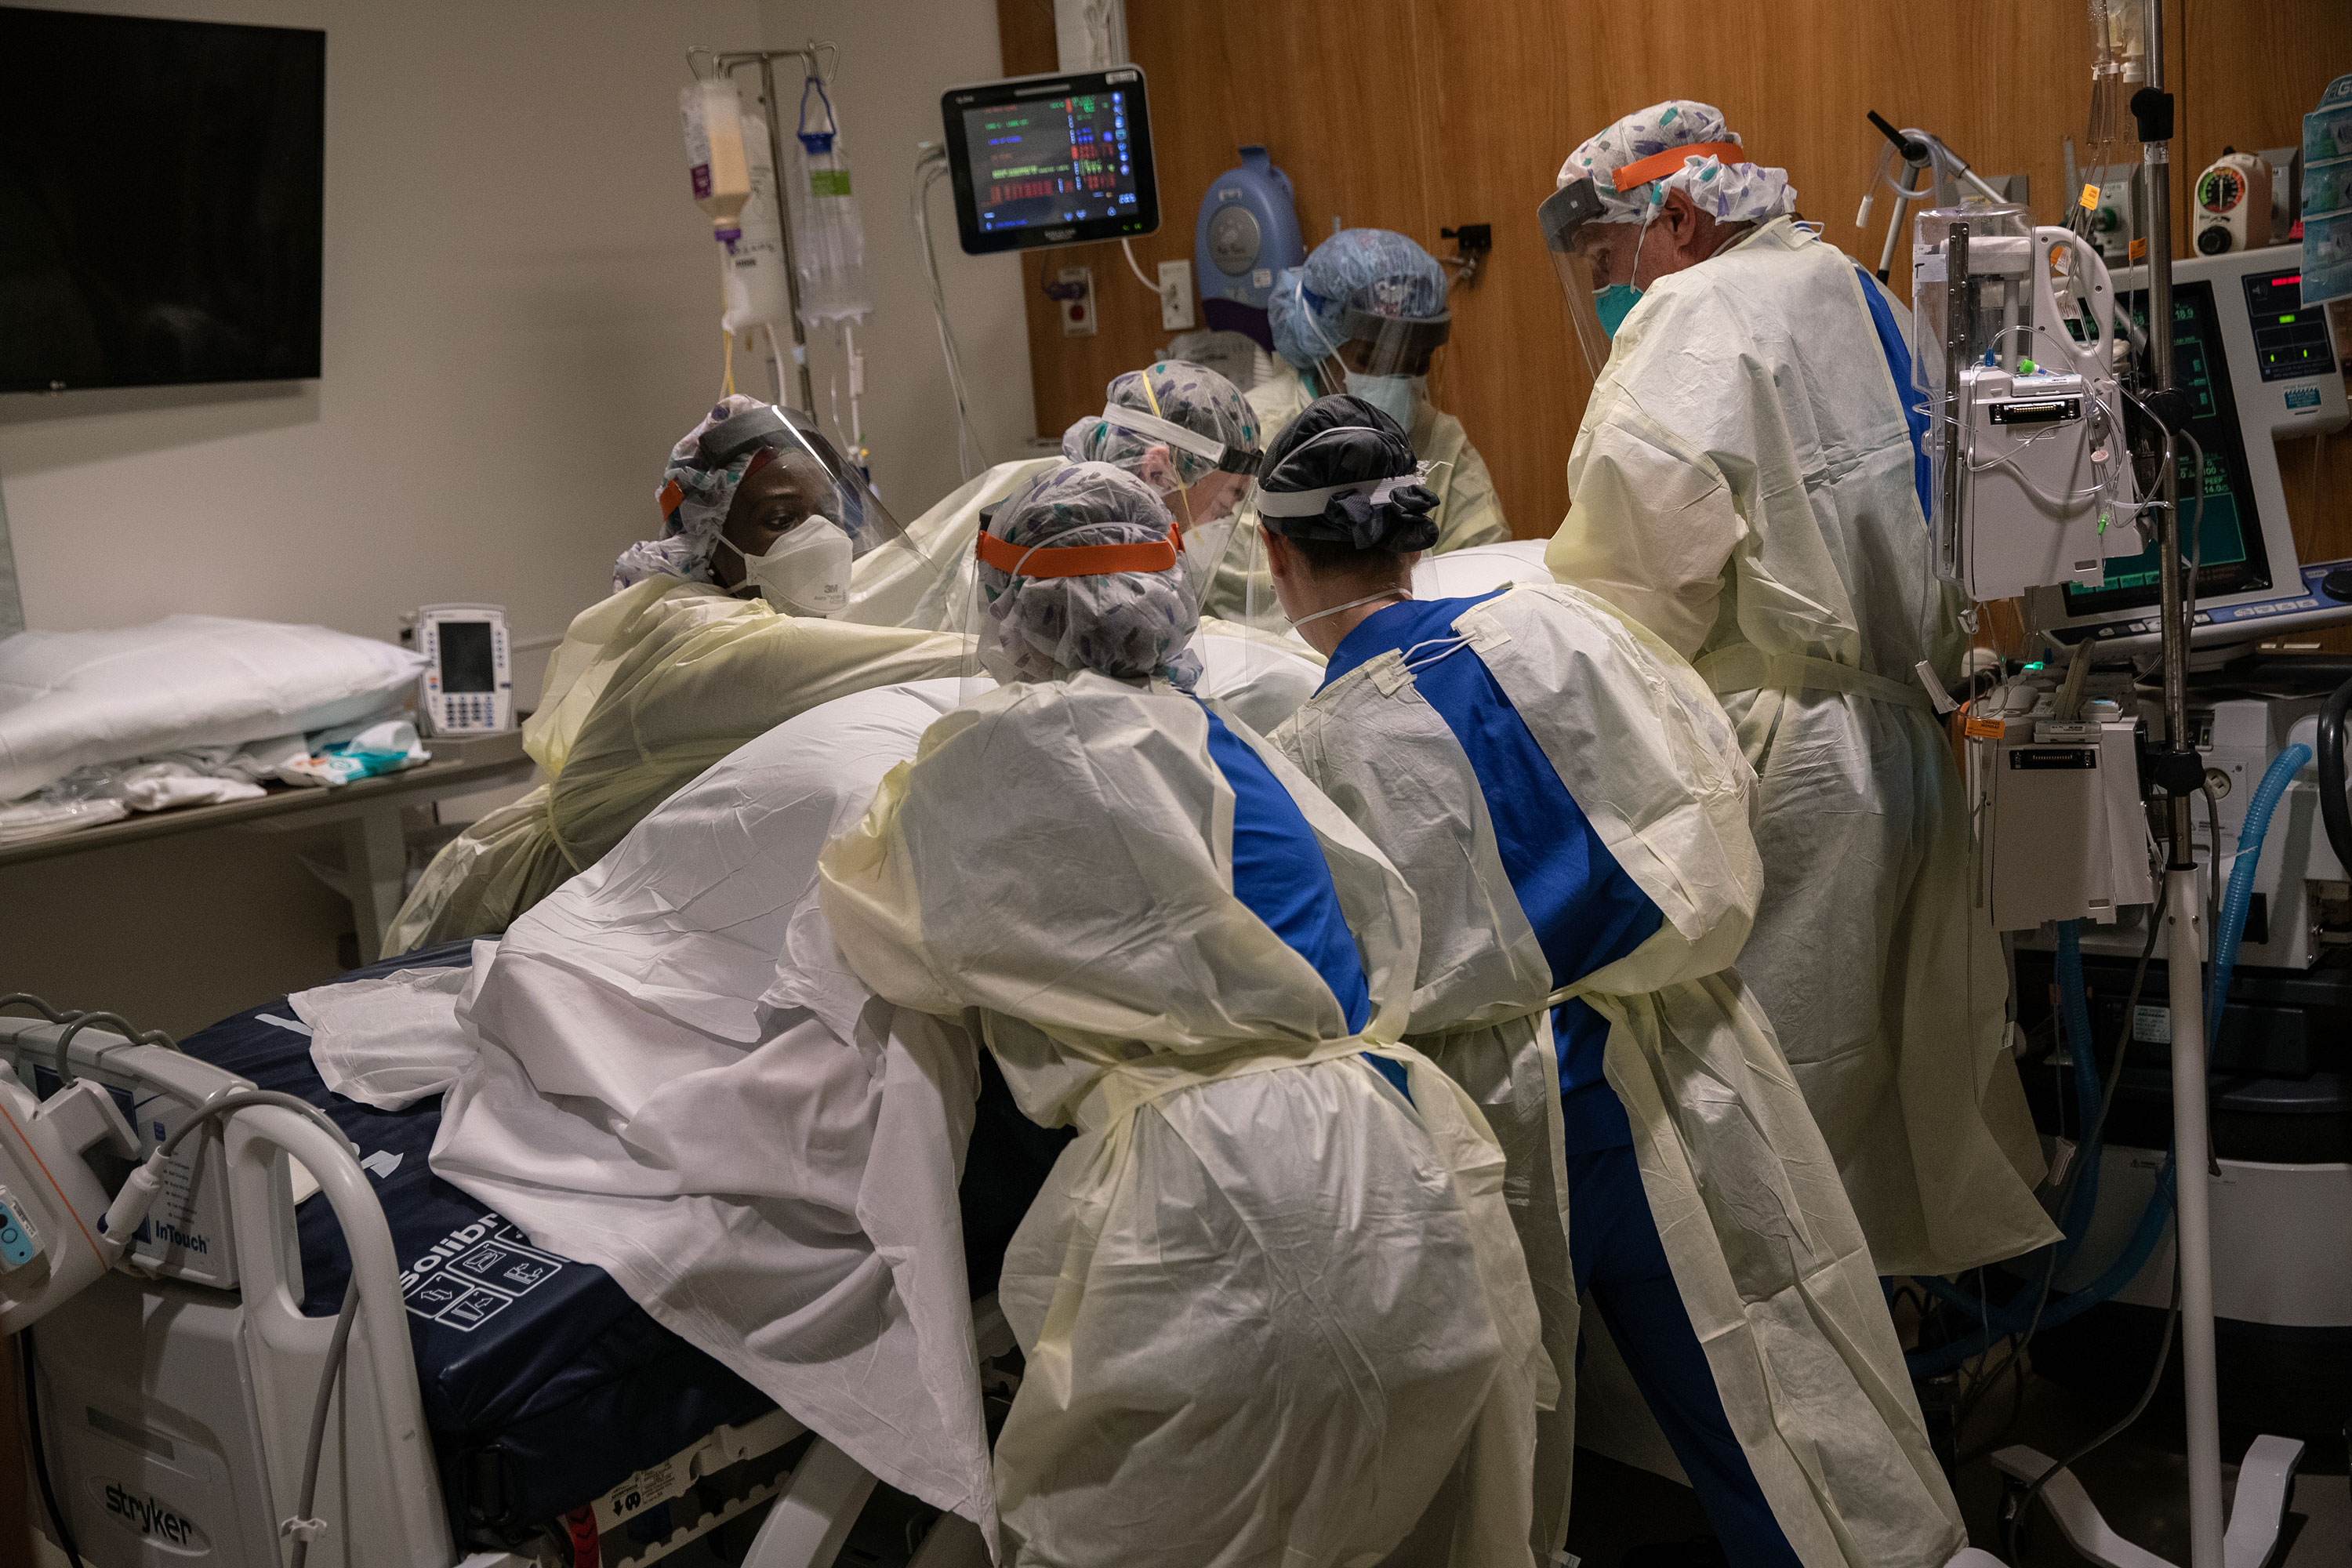 Medical workers tend to a coronavirus patient at Stamford Hospital on April 24, in Stamford, Connecticut.